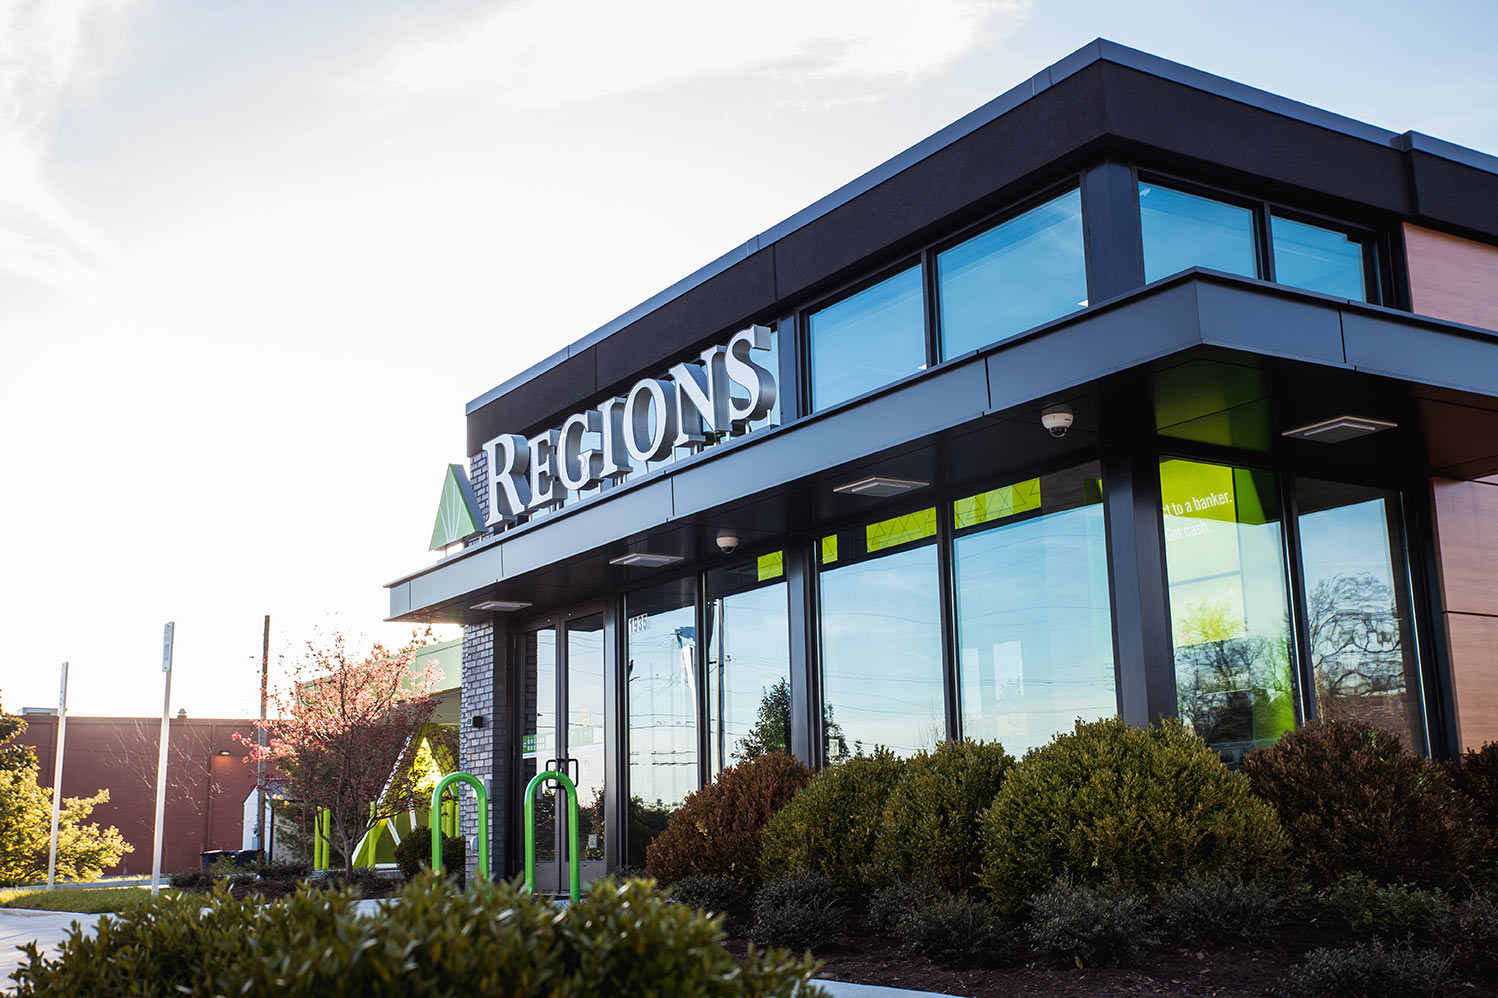 regions-new-build-psco-exterior-signage-12